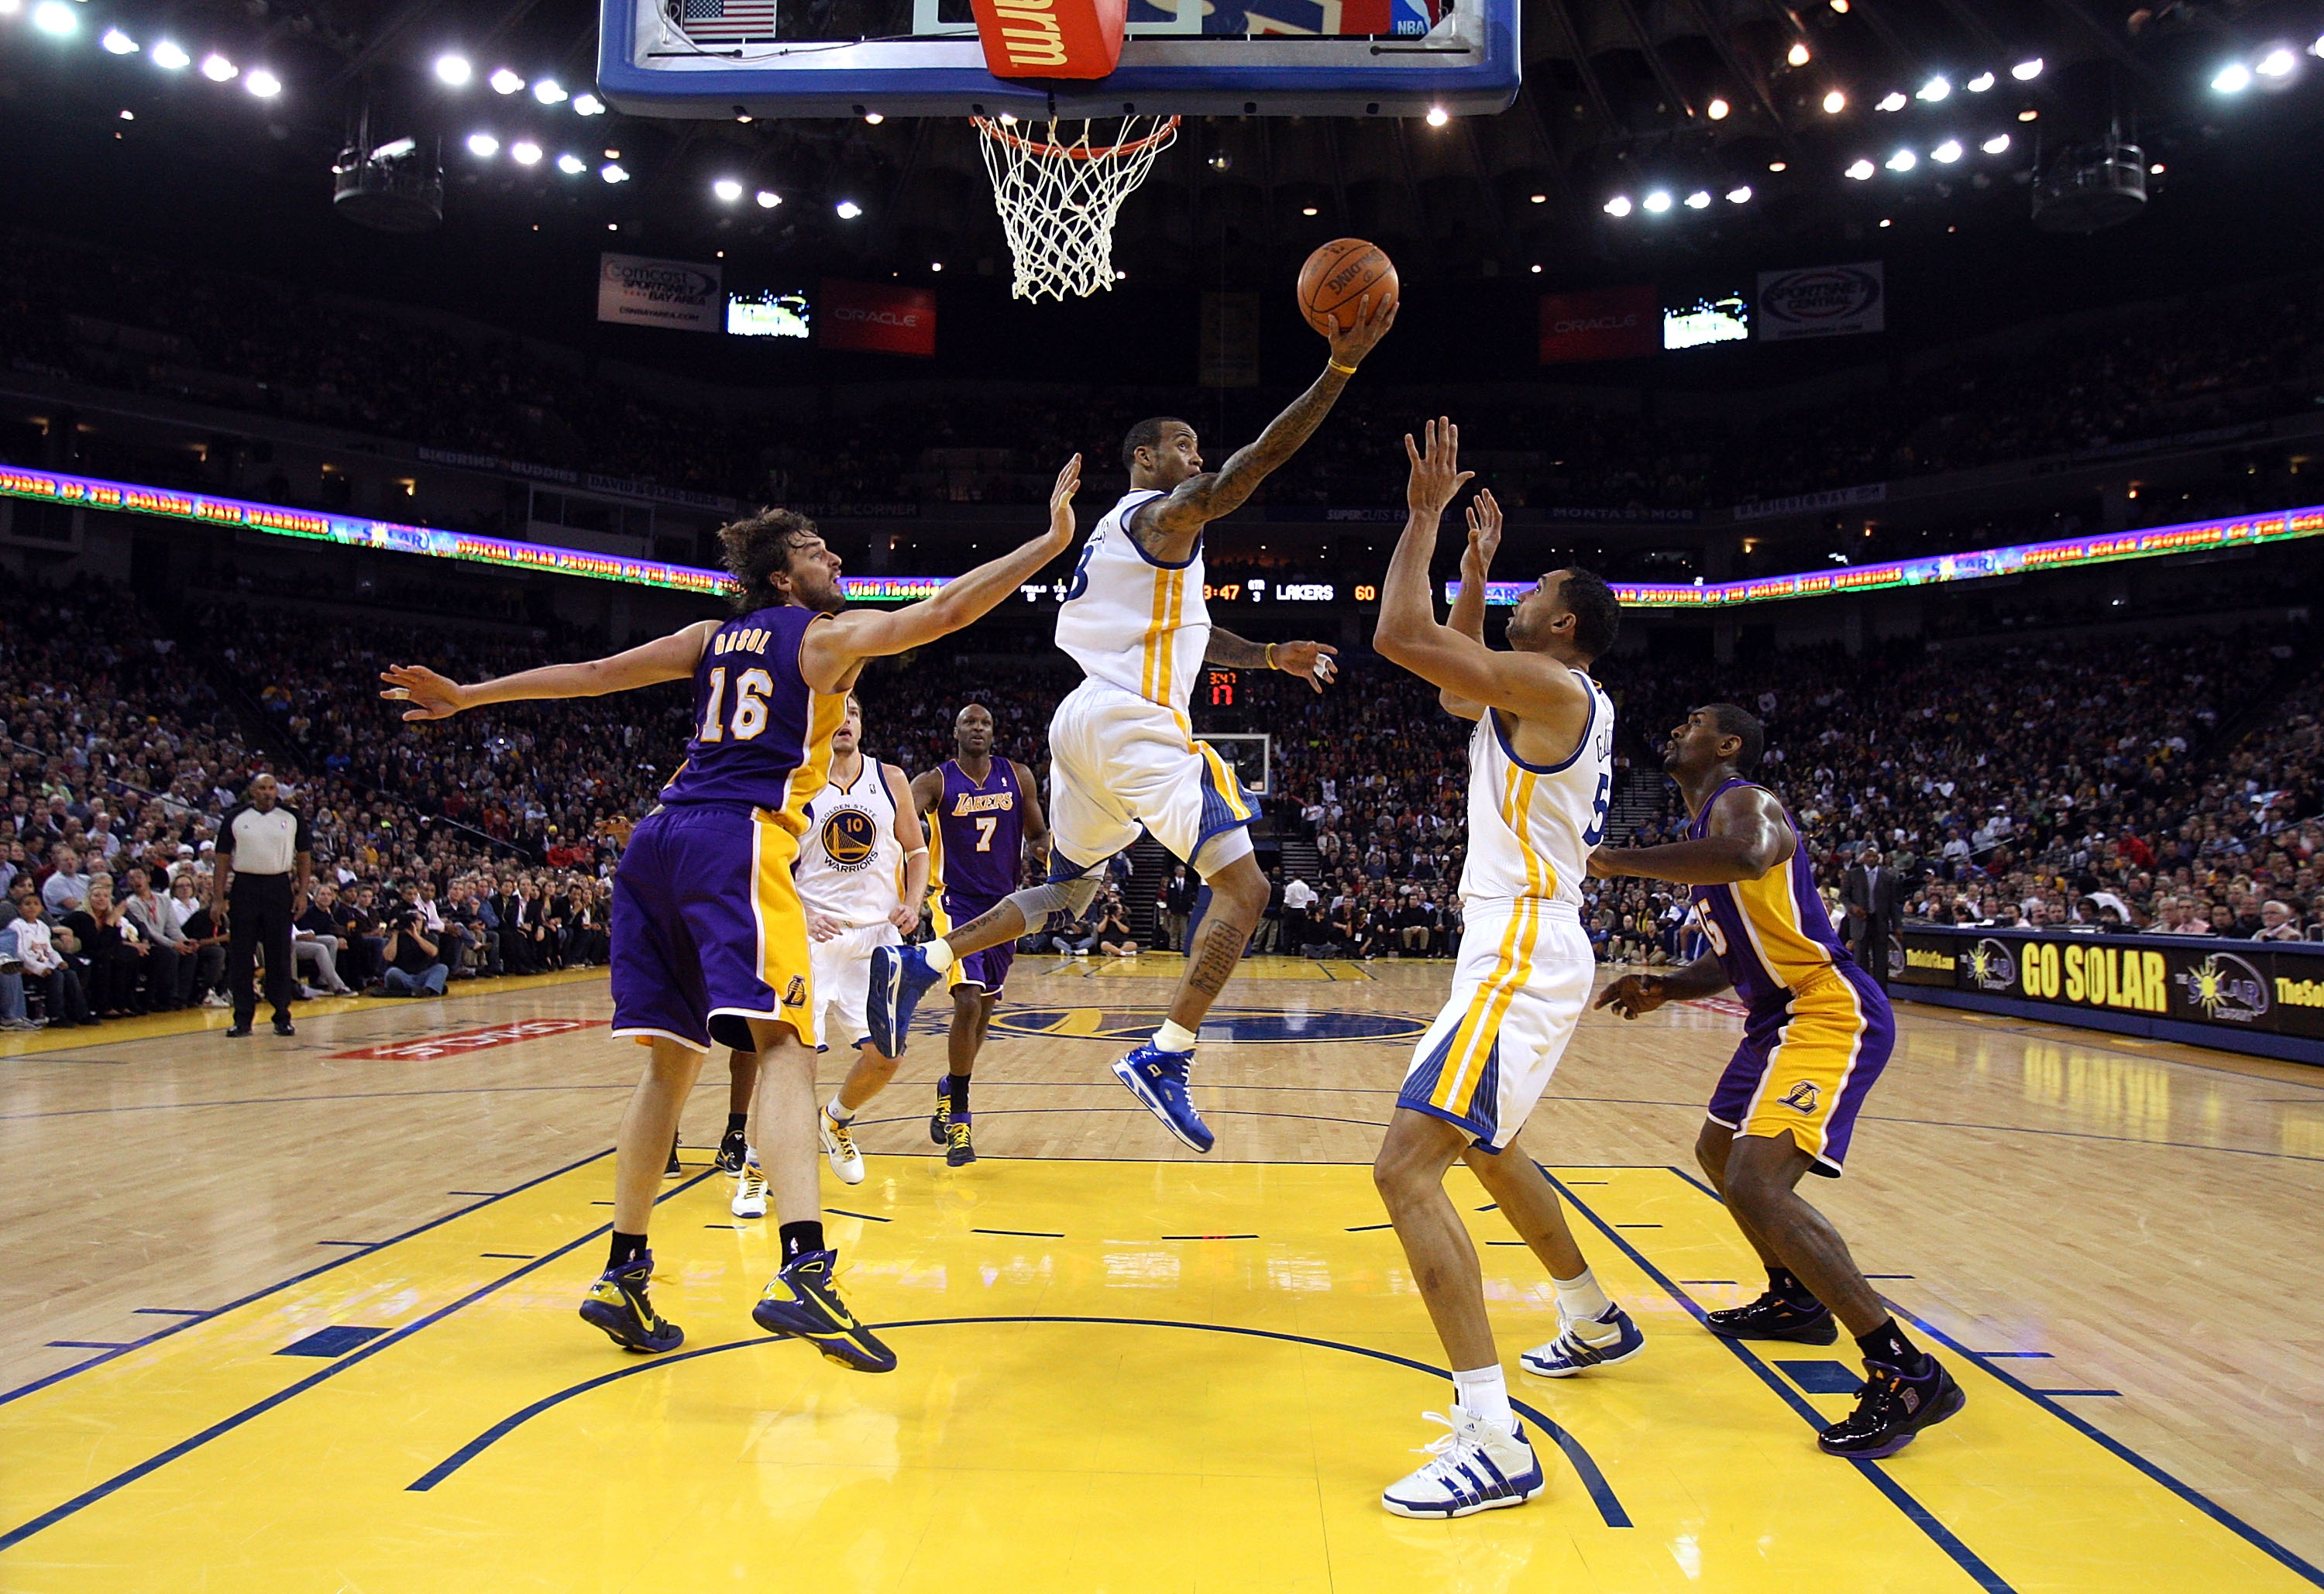 OAKLAND, CA - JANUARY 12:  Monta Ellis #8 of the Golden State Warriors goes up for a shot against the Los Angeles Lakers at Oracle Arena on January 12, 2011 in Oakland, California. NOTE TO USER: User expressly acknowledges and agrees that, by downloading